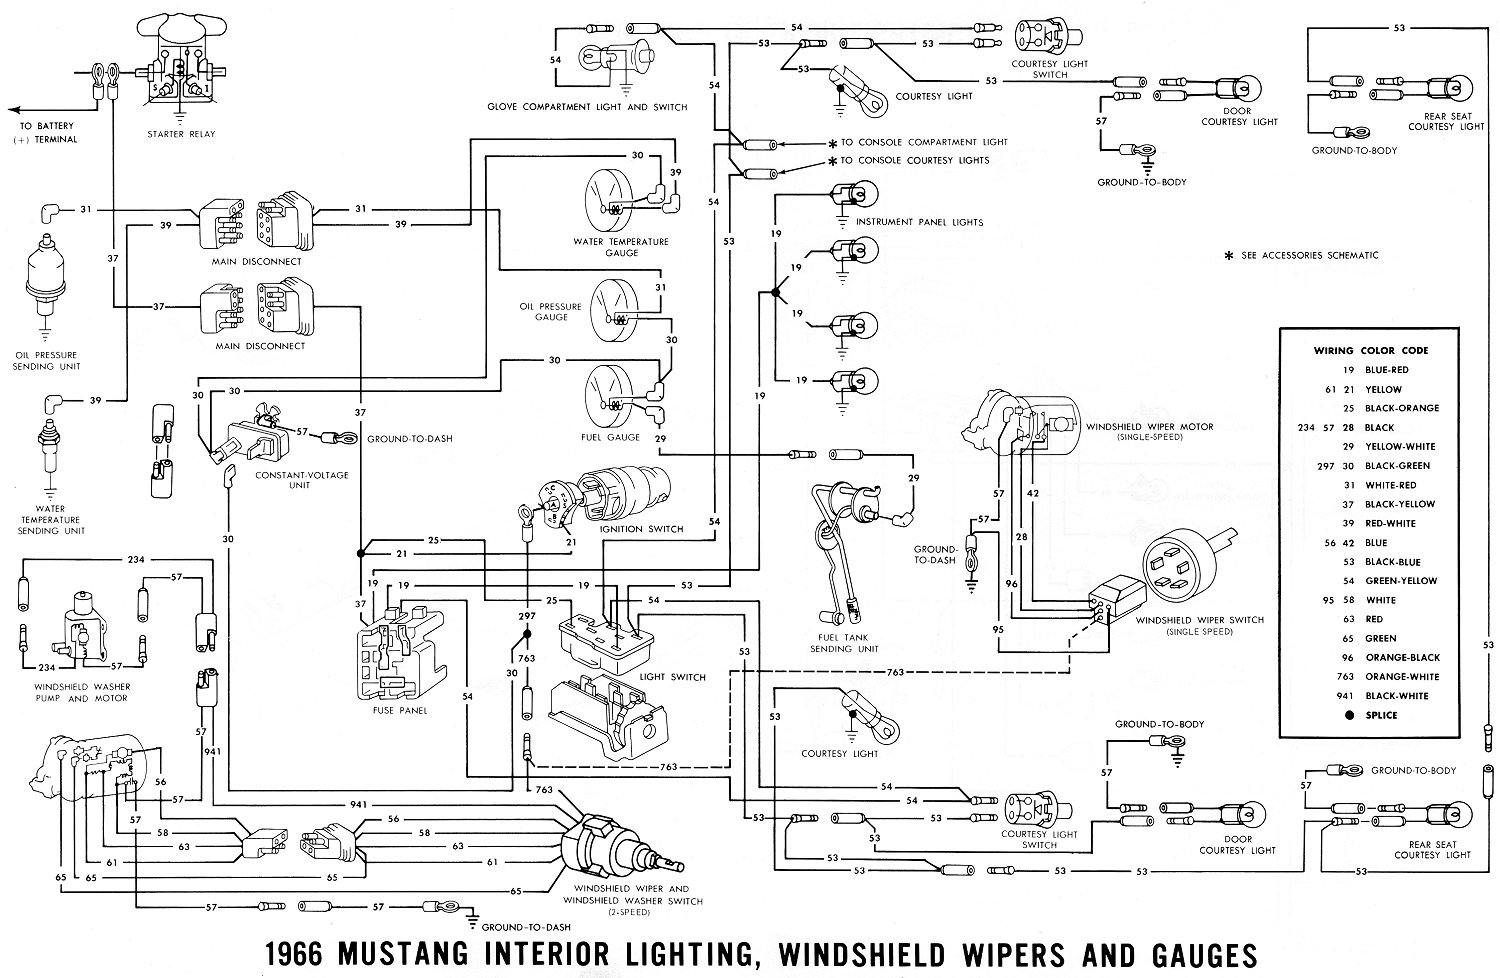 66inter1 1966 mustang wiring diagrams average joe restoration 1971 Thunderbird Interior at mifinder.co